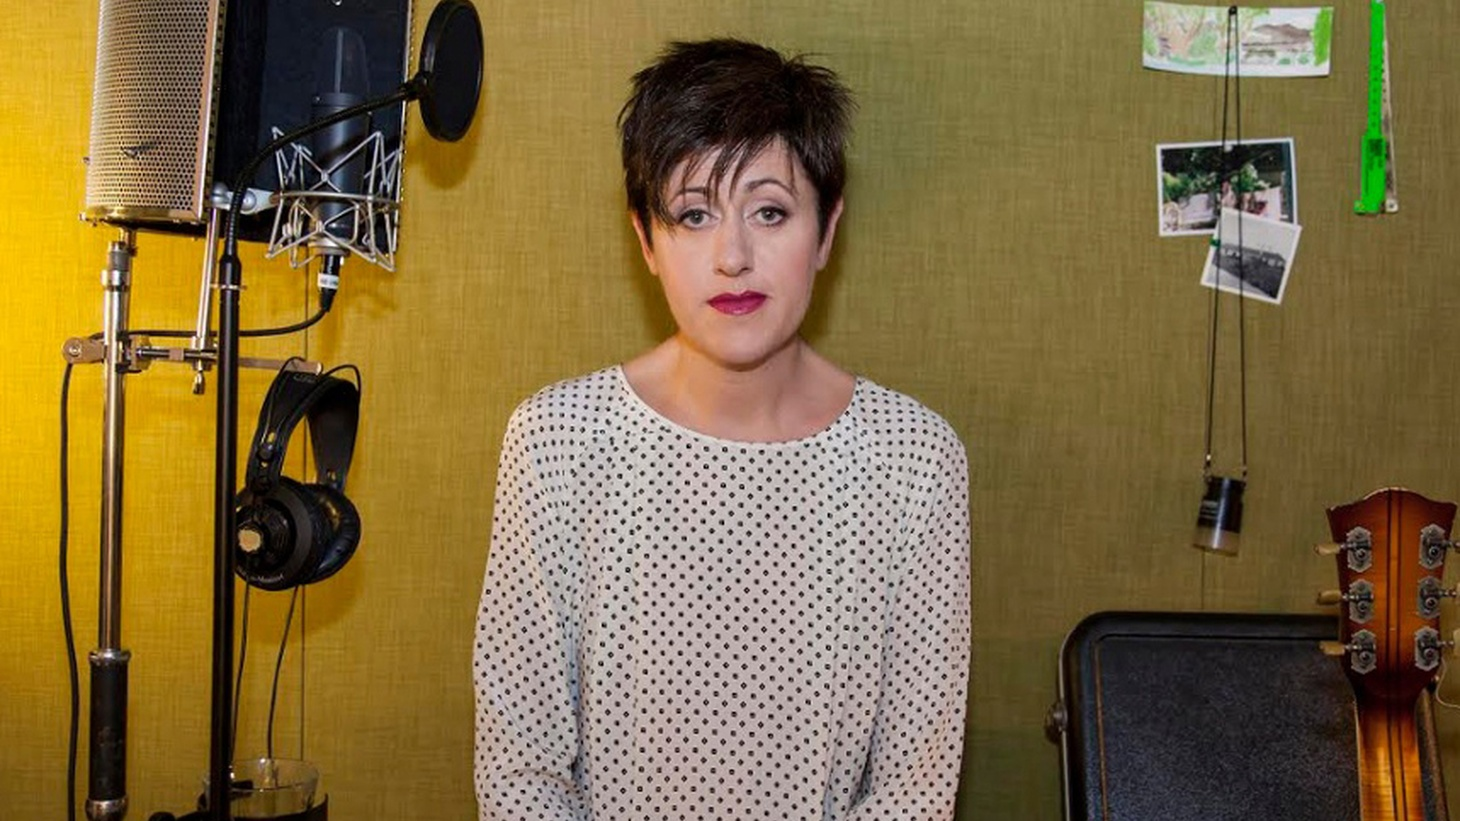 Best known for her work with Everything but the Girl, Tracey Thorn has been busy setting the tone to acclaimed director Carol Morley's film, The Falling.